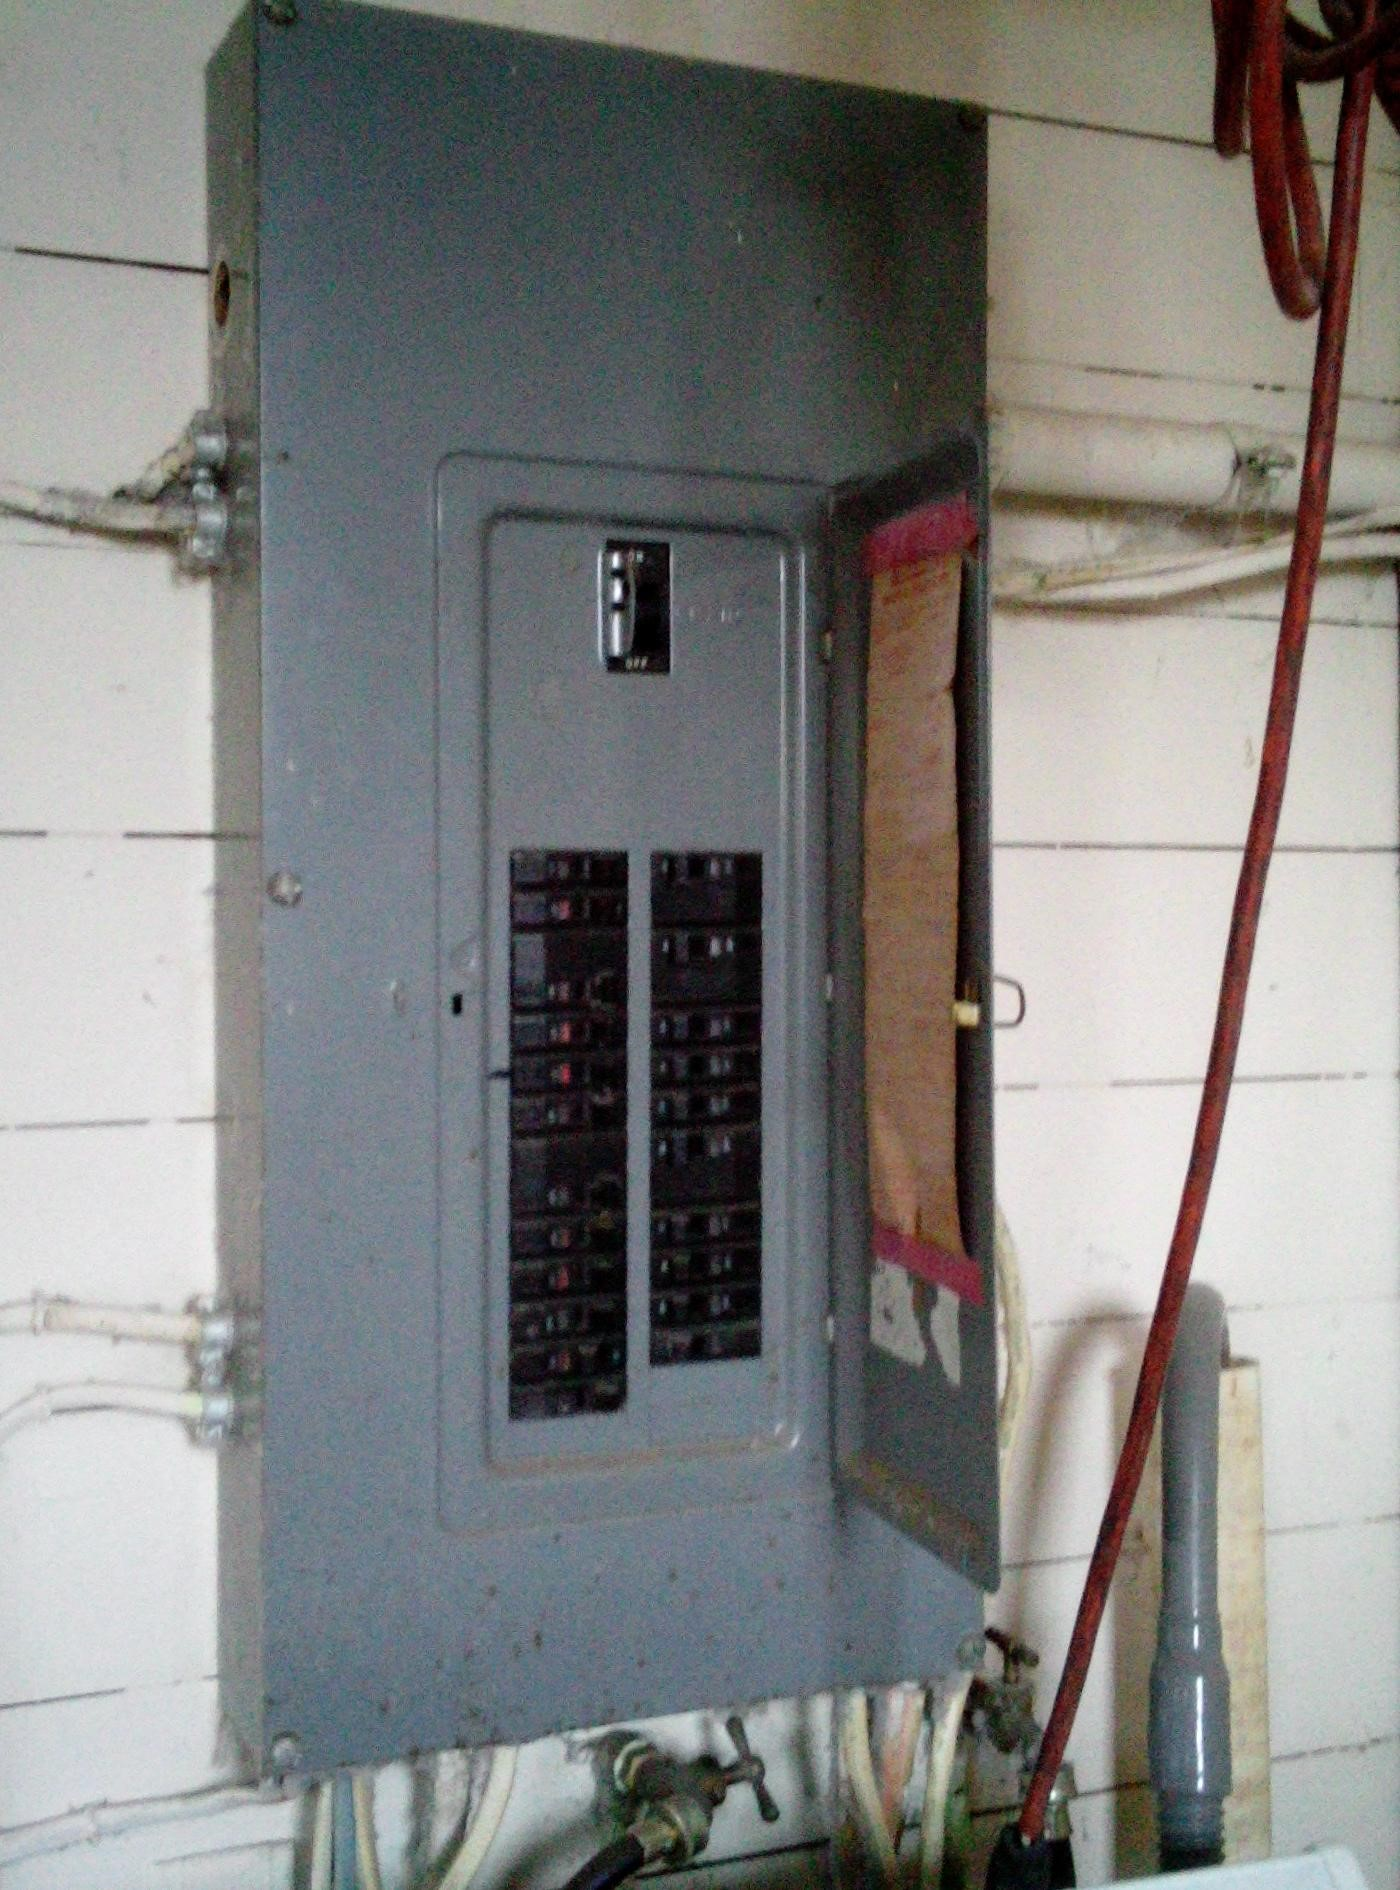 Electrical Home Design Ideas: Electrical Safety Tips To Follow In A Flooded Home